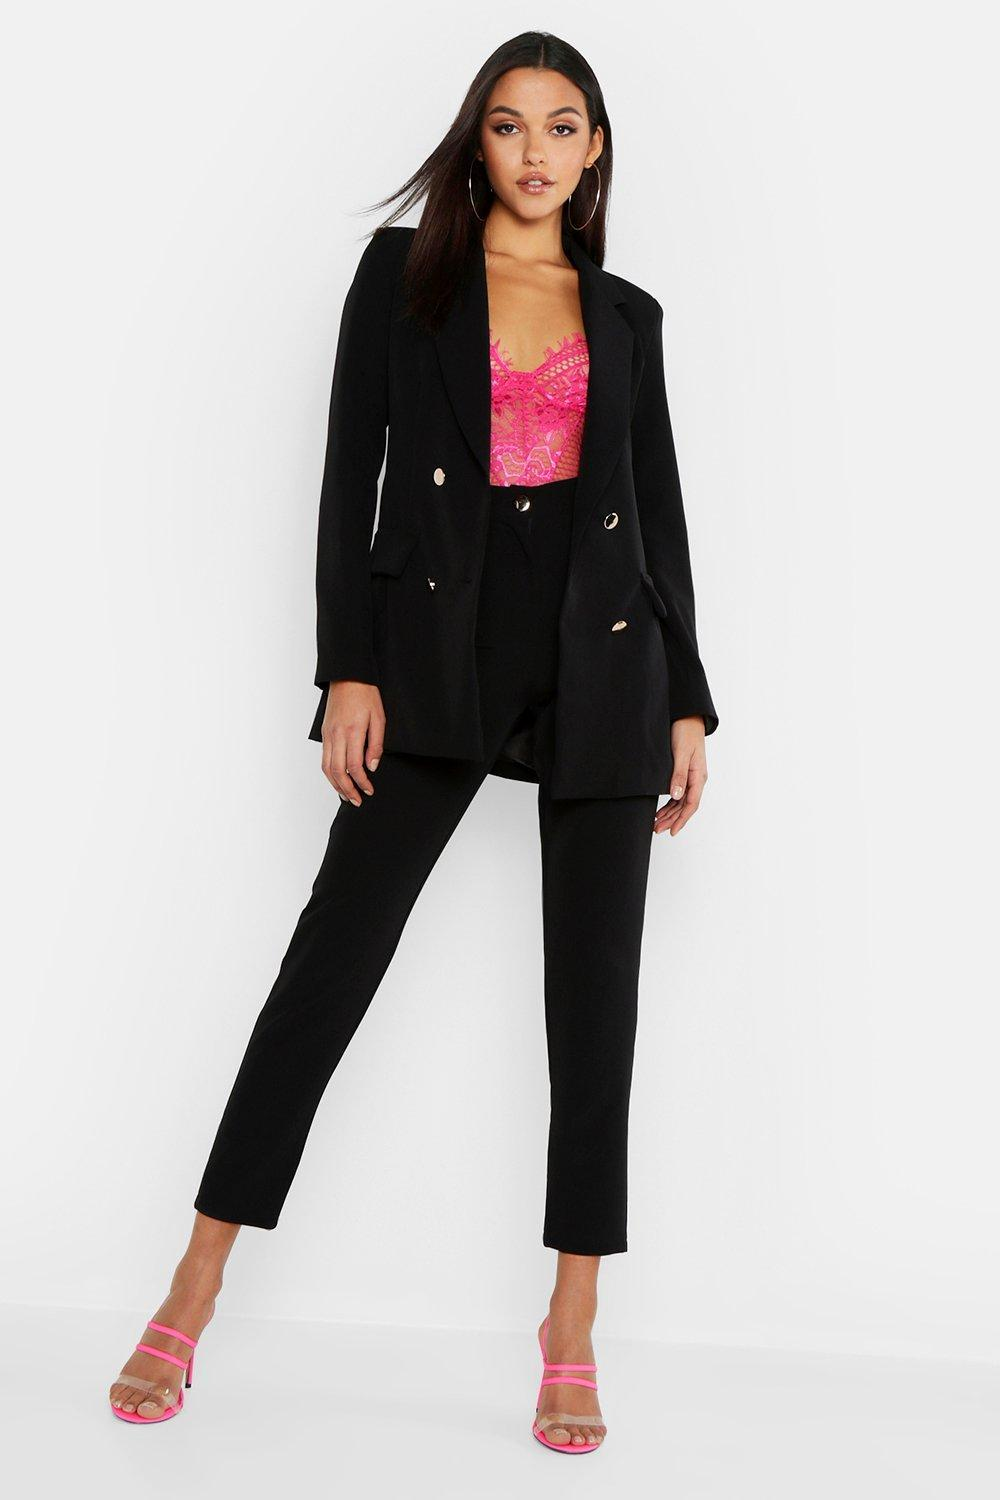 777db8e80d5f1 Boohoo. Women's Tall Neon Tailored Trouser